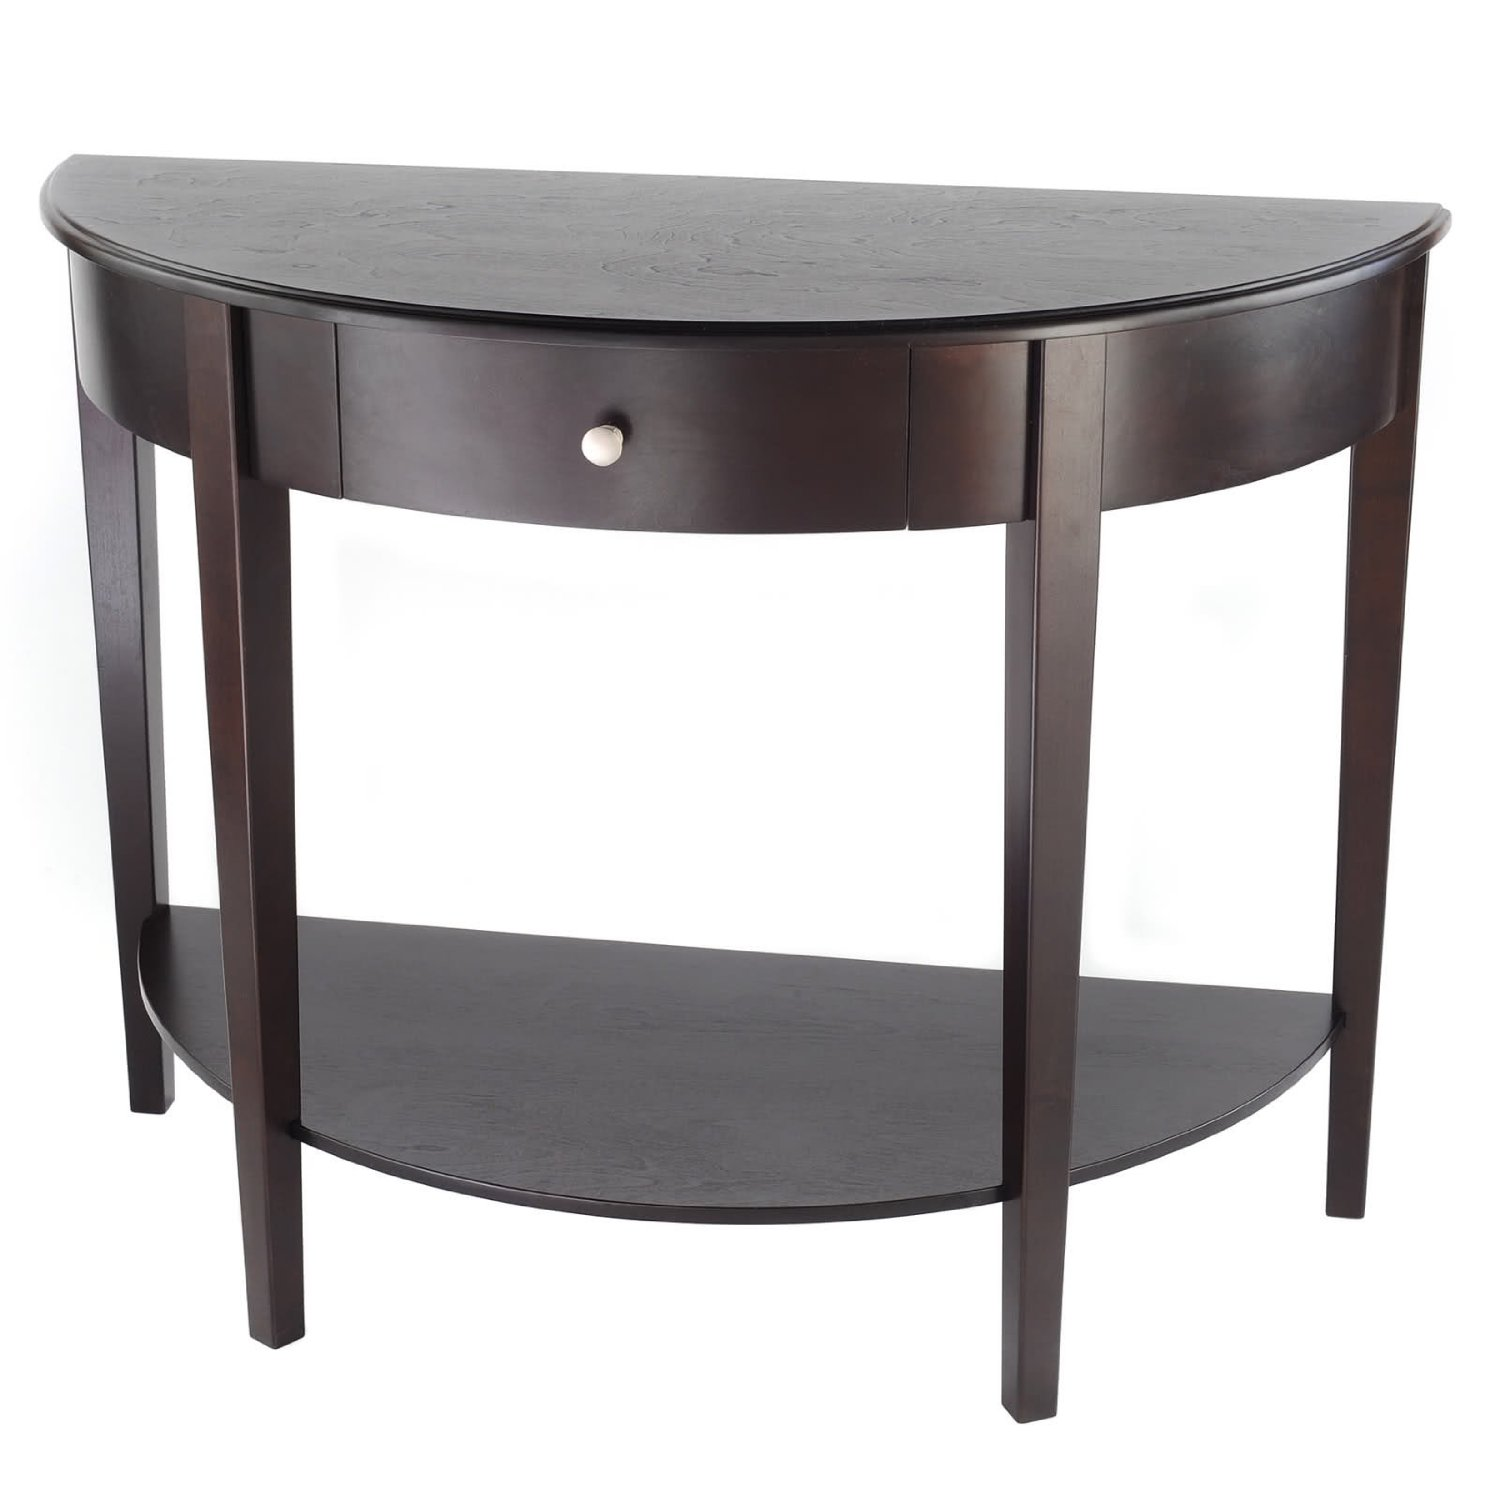 half round hall table find small circle accent get quotations bay shore collection large moon with drawer espresso target black pair side tables ikea childrens furniture storage